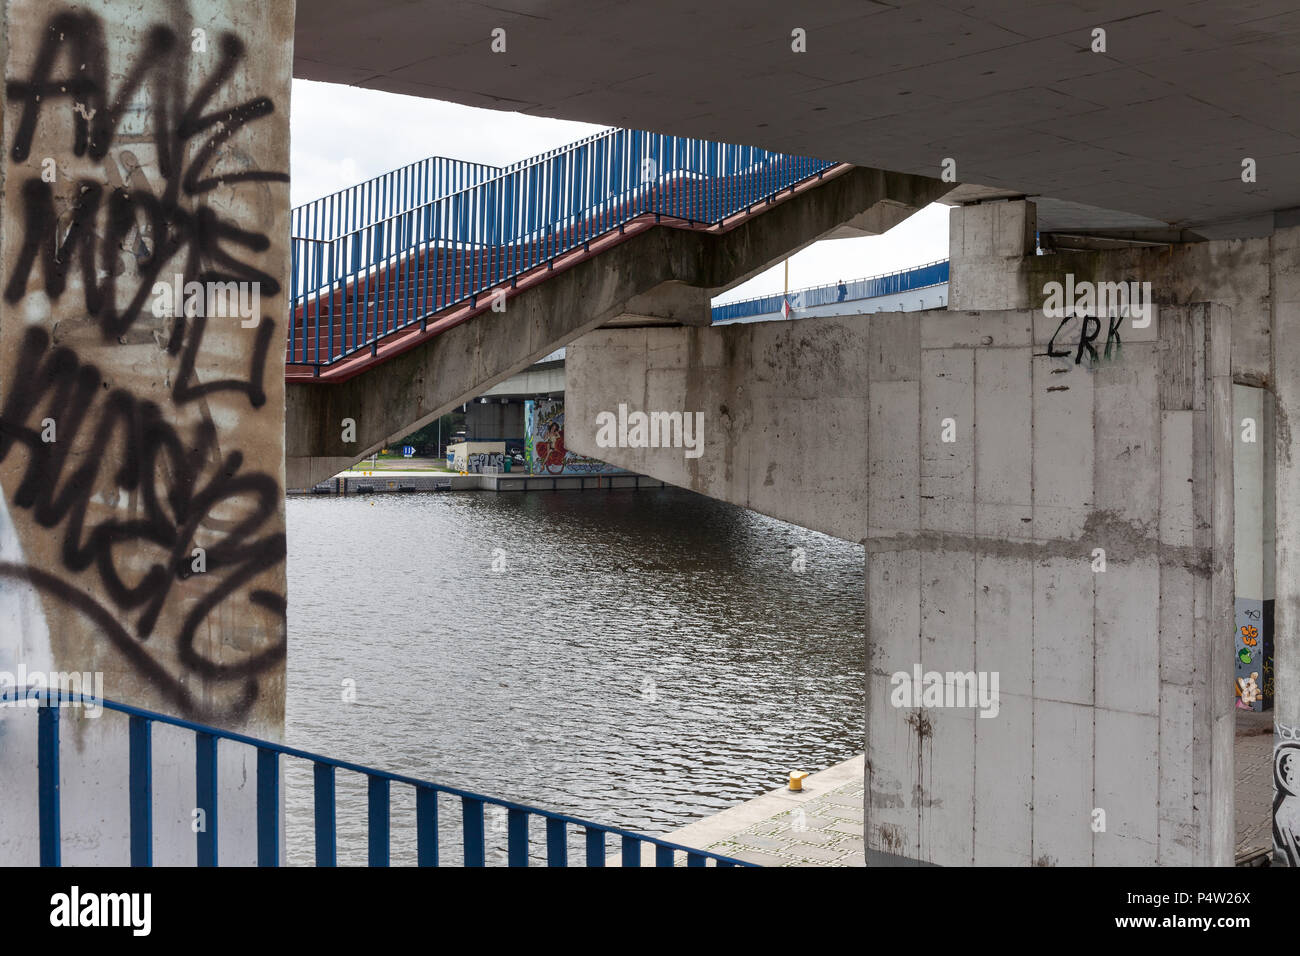 Szczecin, Poland, stairs under highways - Stock Image